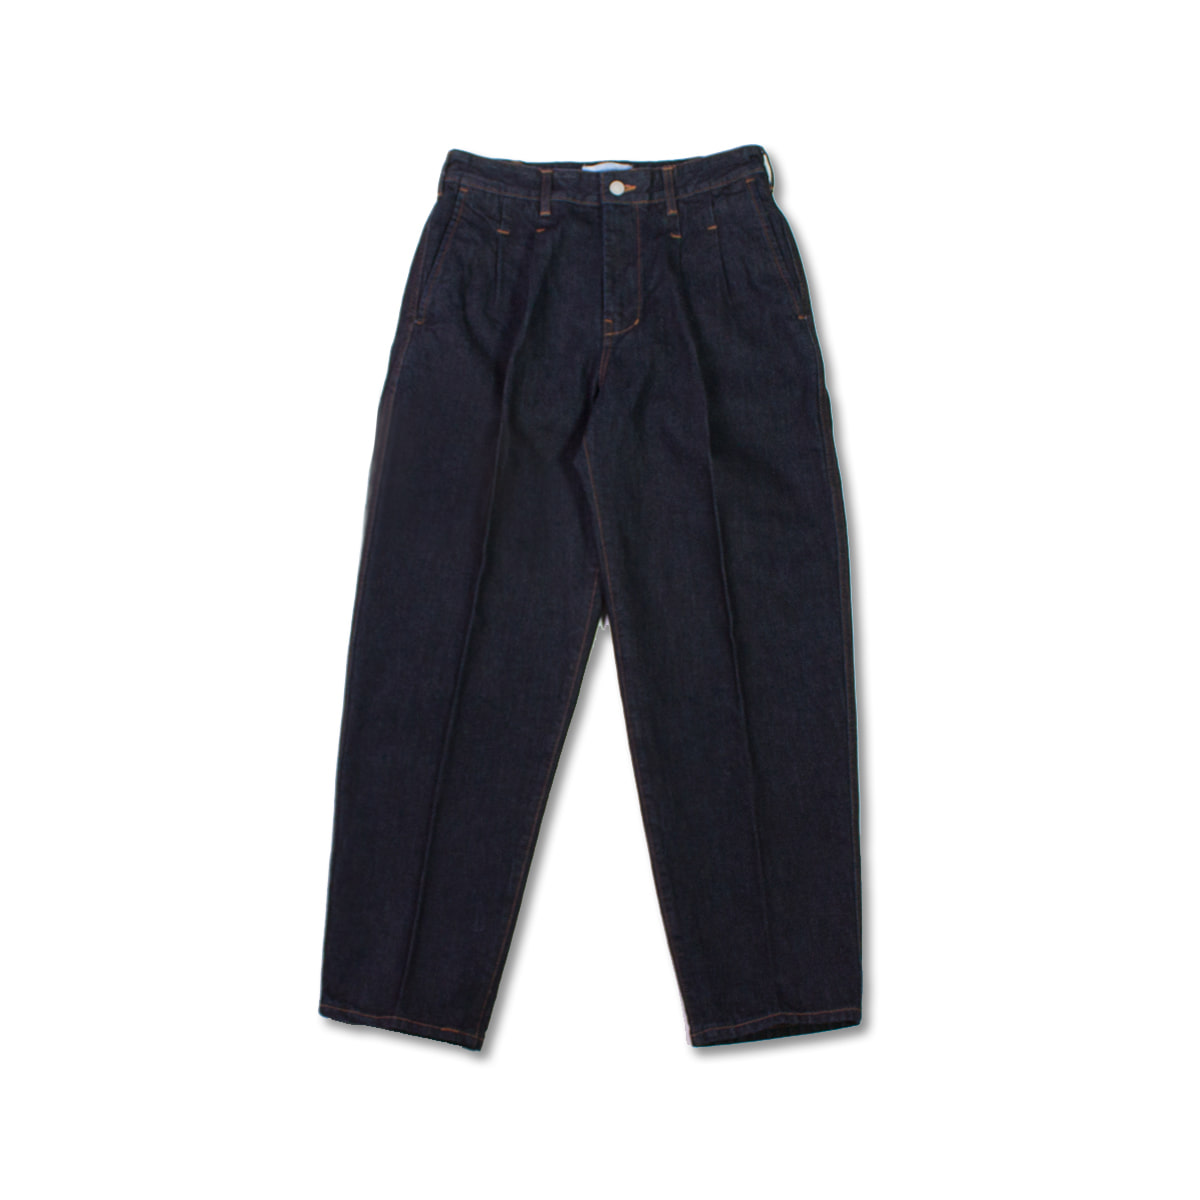 [8DIVISION] PLEATED JEANS 'ONE WASH INDIGO'